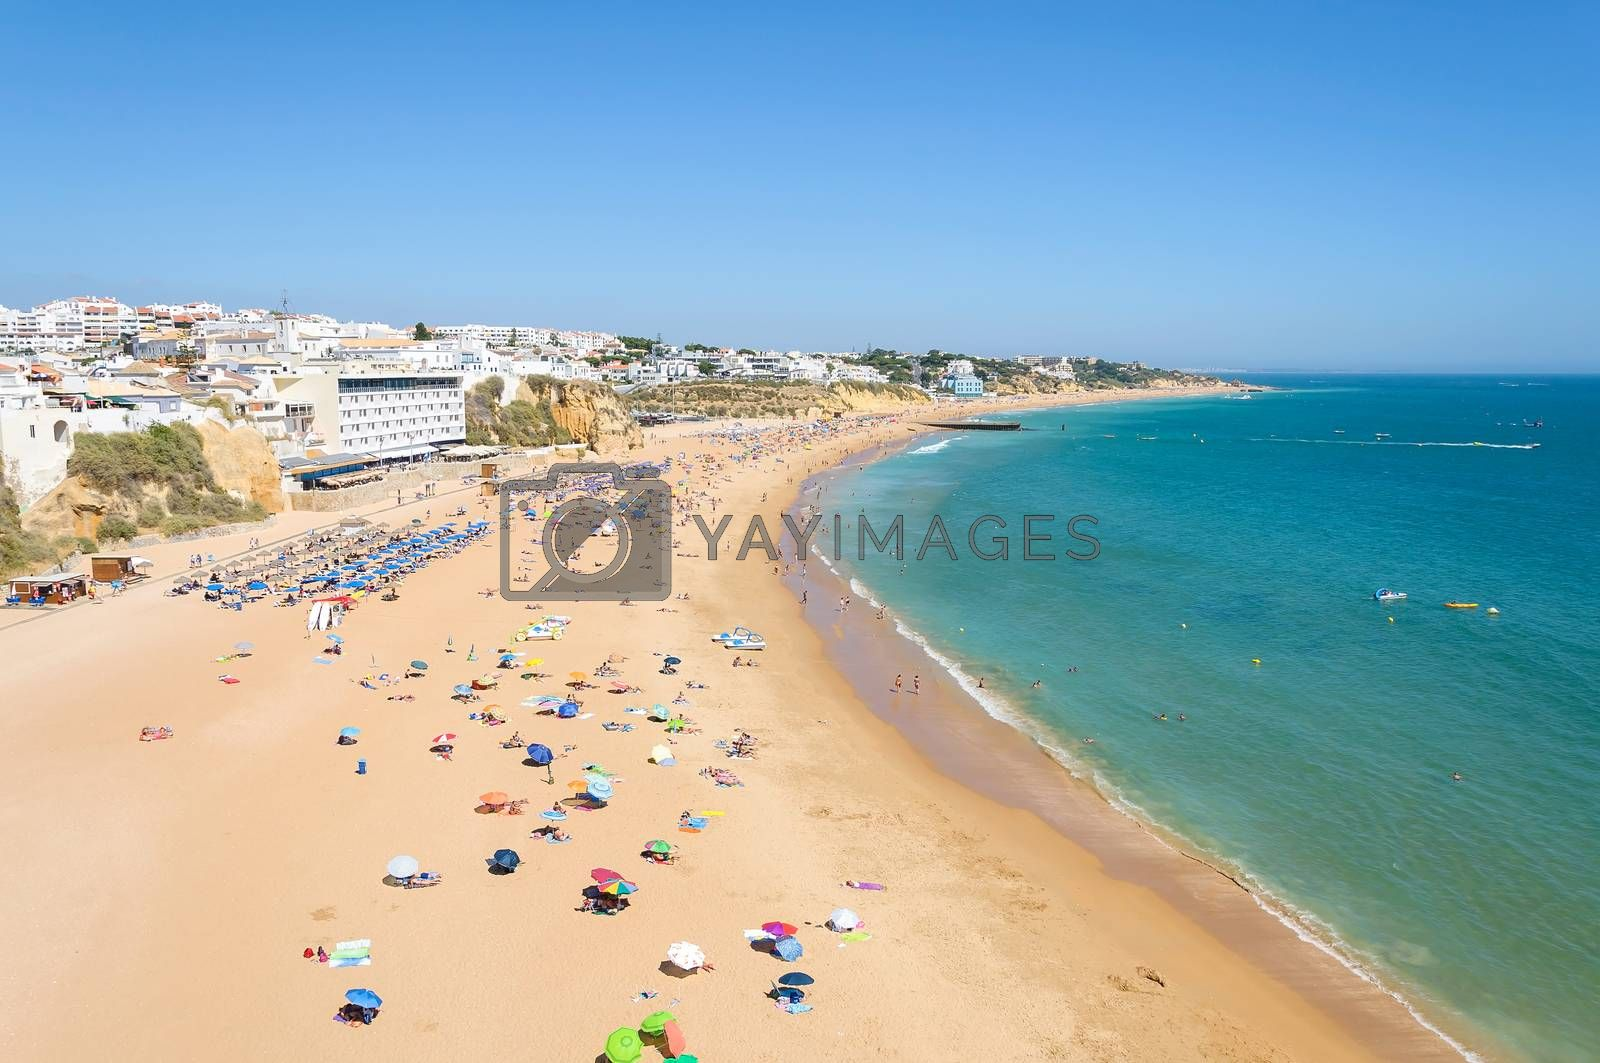 View of crowded beach in Albufeira, Algarve, Portugal